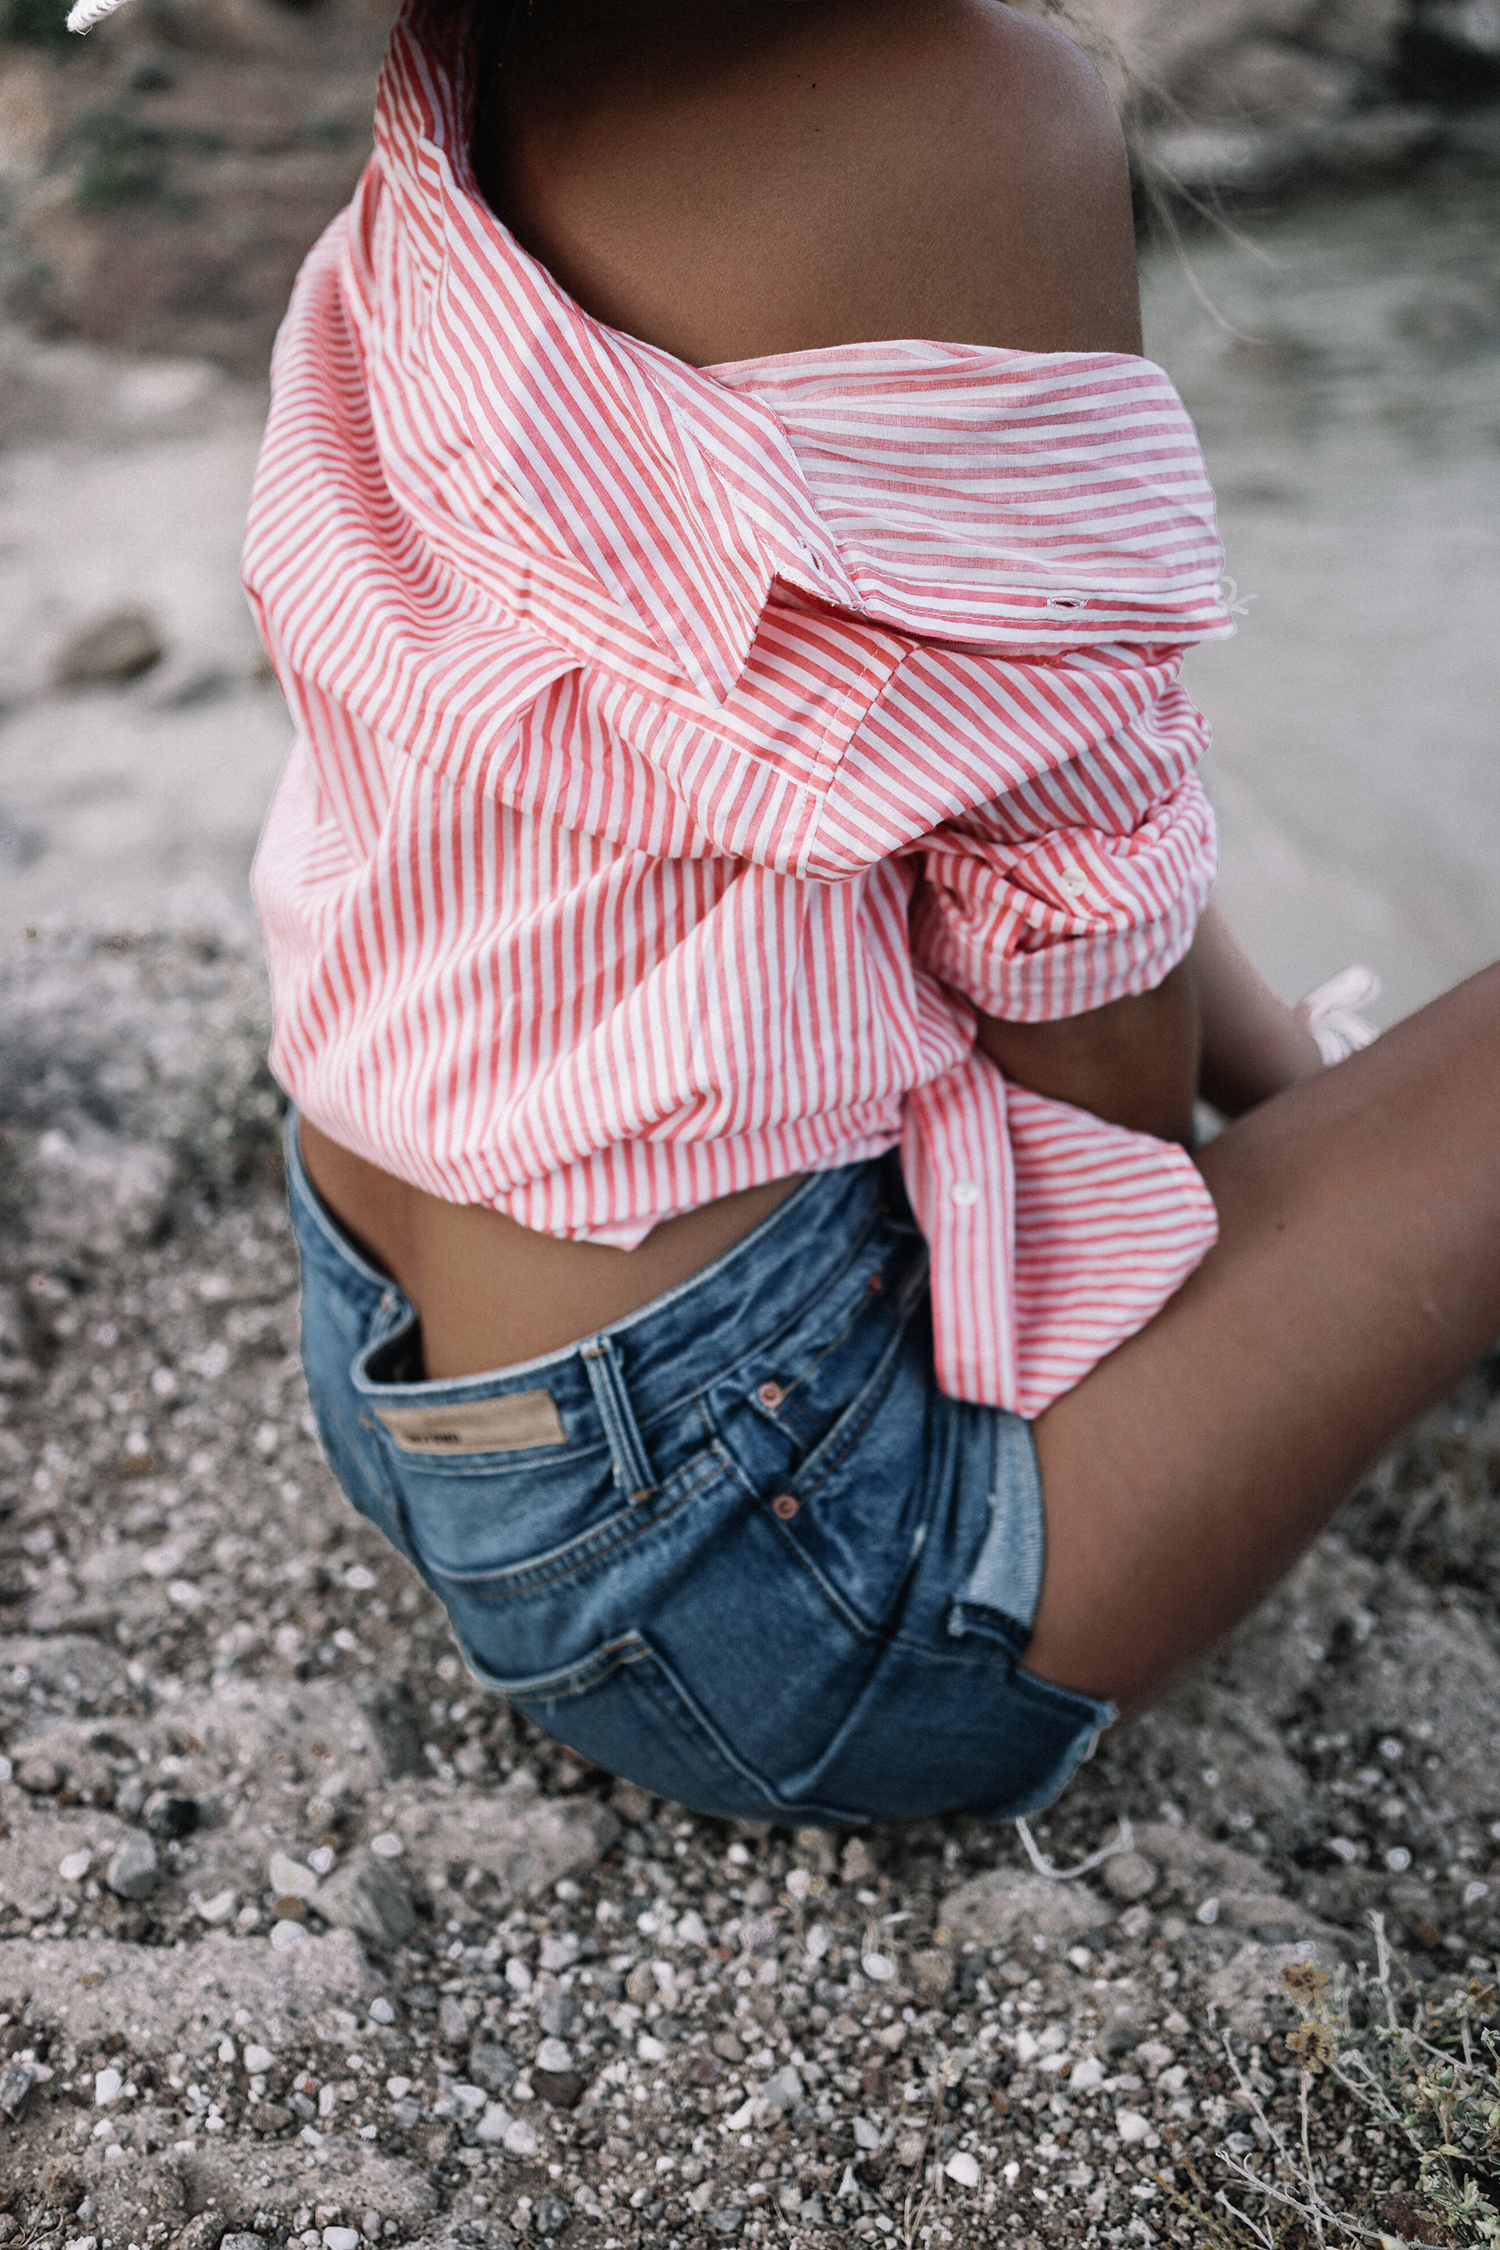 Mykonos-Collage_on_The_Road-Striped_Shirt-GRLFRND_Shorts-Straw_Hat-17